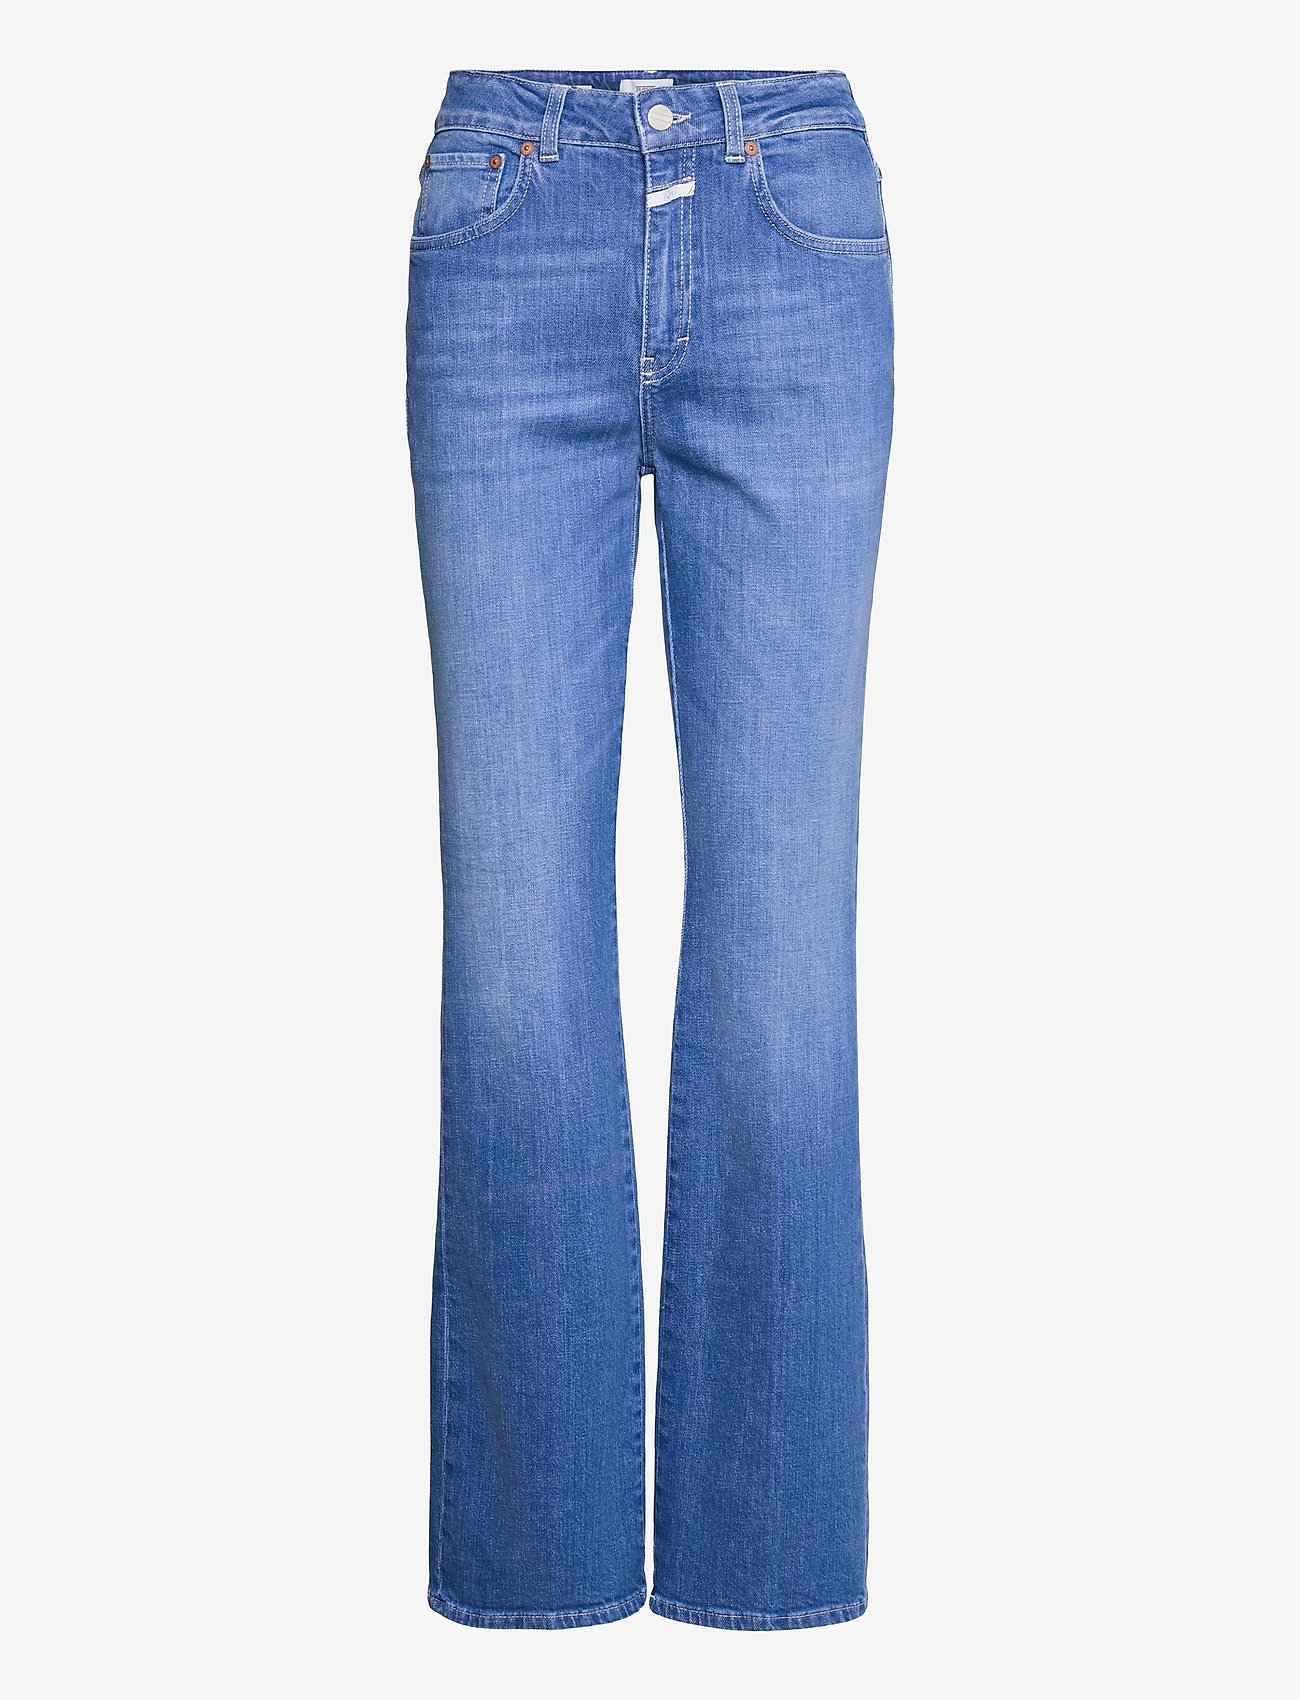 Closed - womens pant - schlaghosen - mid blue - 0